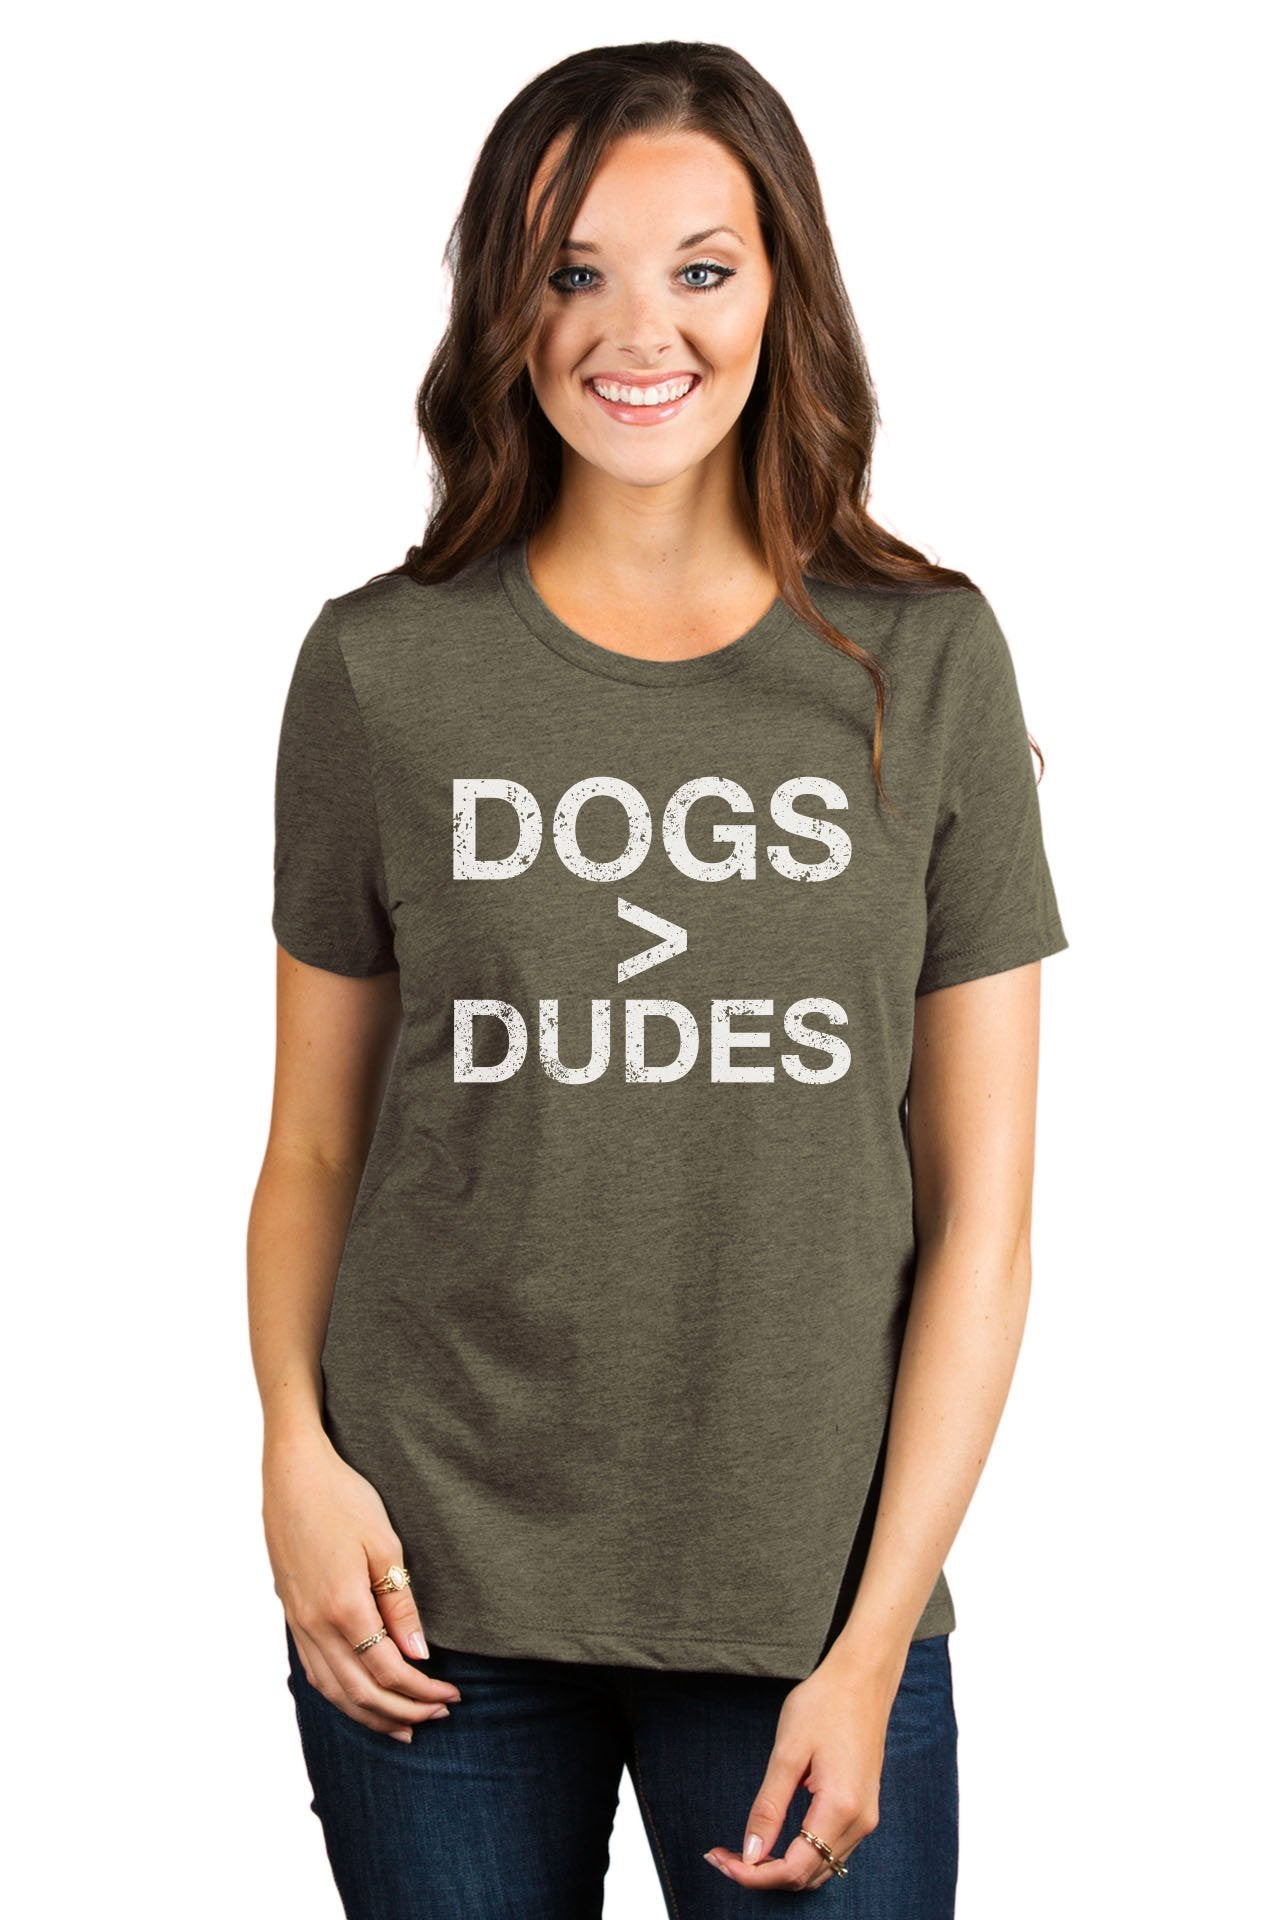 Dogs Greater Than Dudes - Thread Tank | Stories You Can Wear | T-Shirts, Tank Tops and Sweatshirts